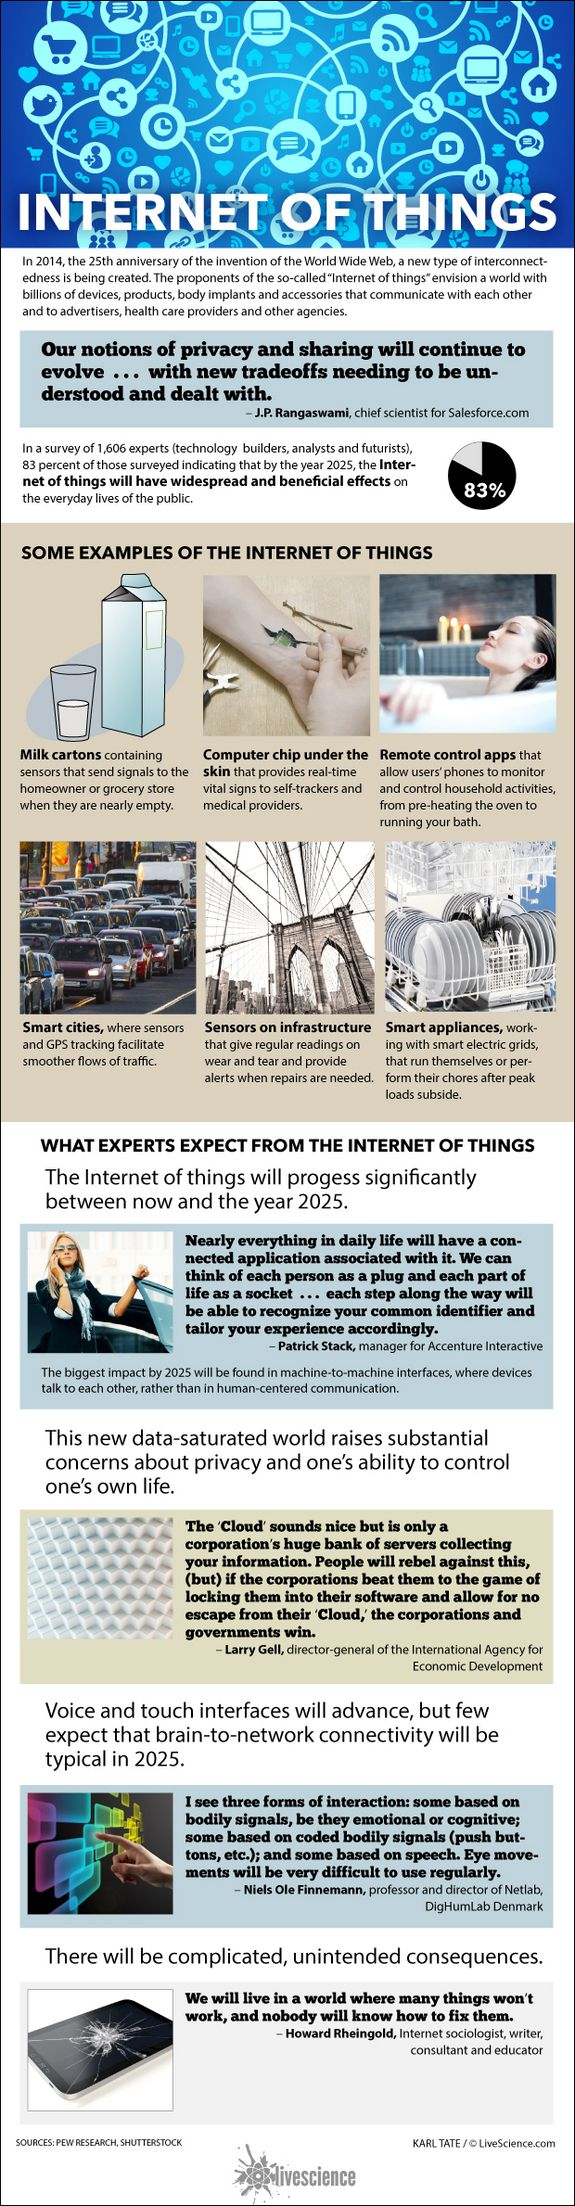 Various responses from experts surveyed about the future of the internet.